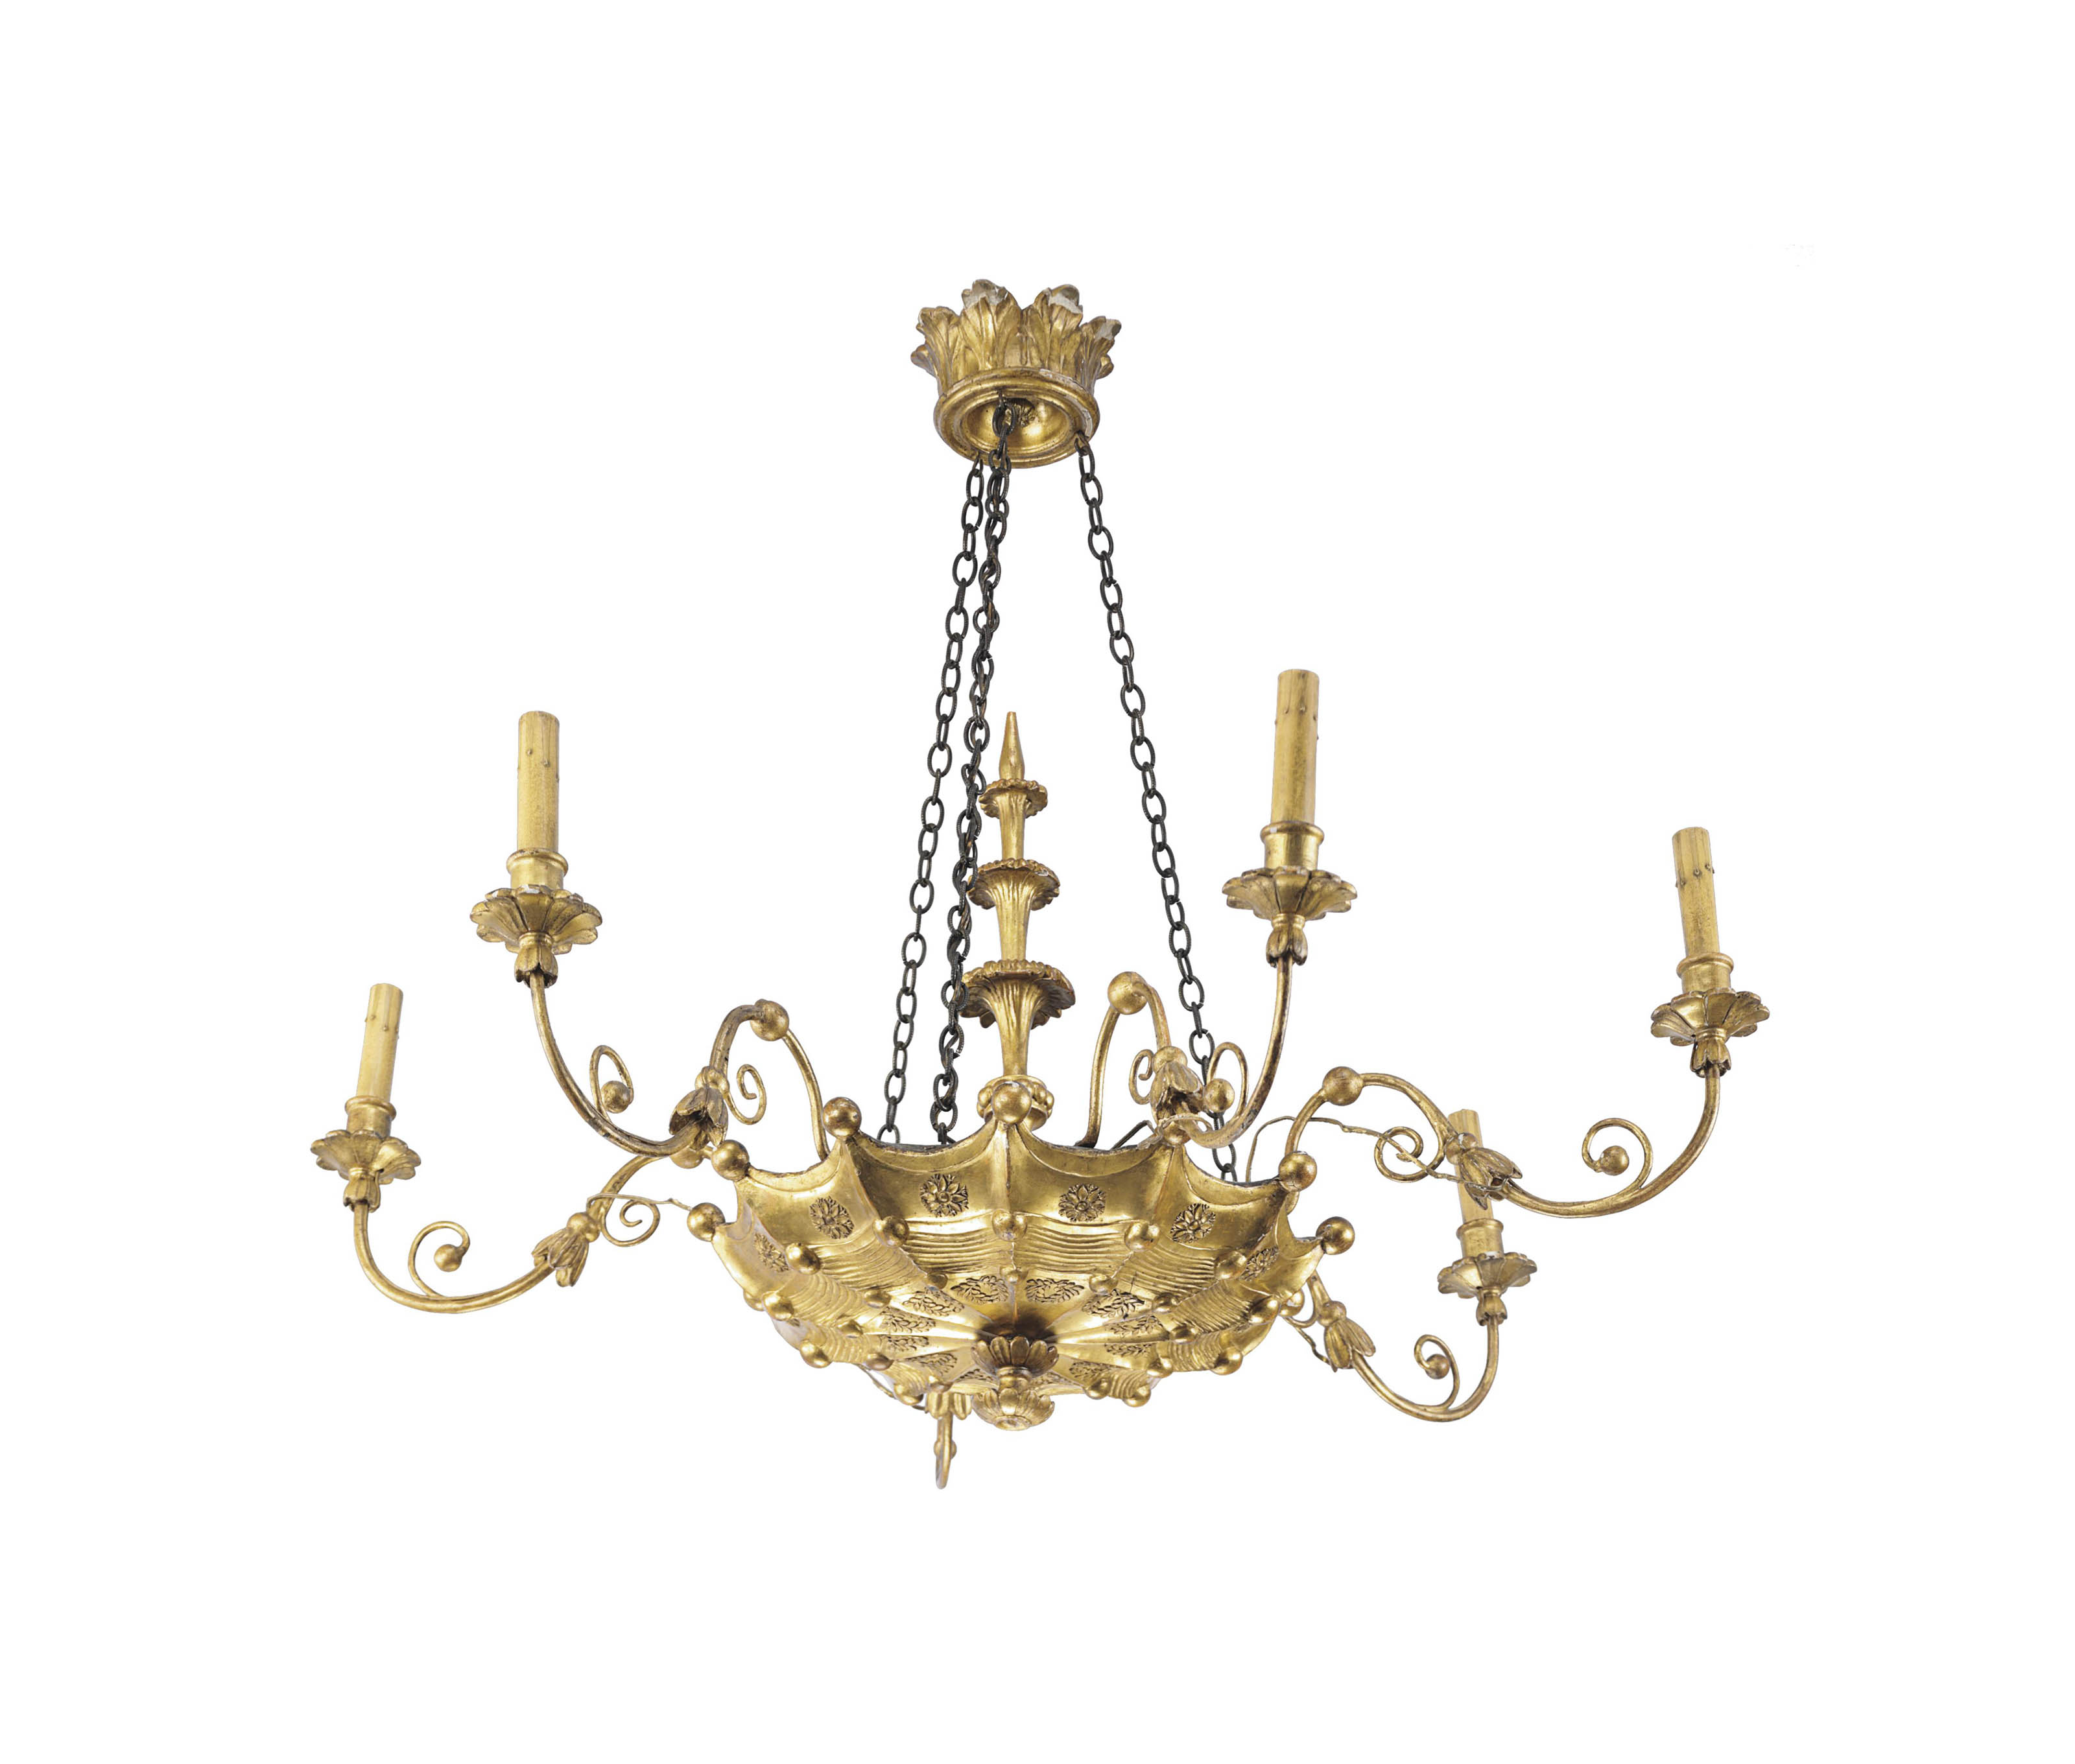 A CONTINENTAL CARVED GILTWOOD